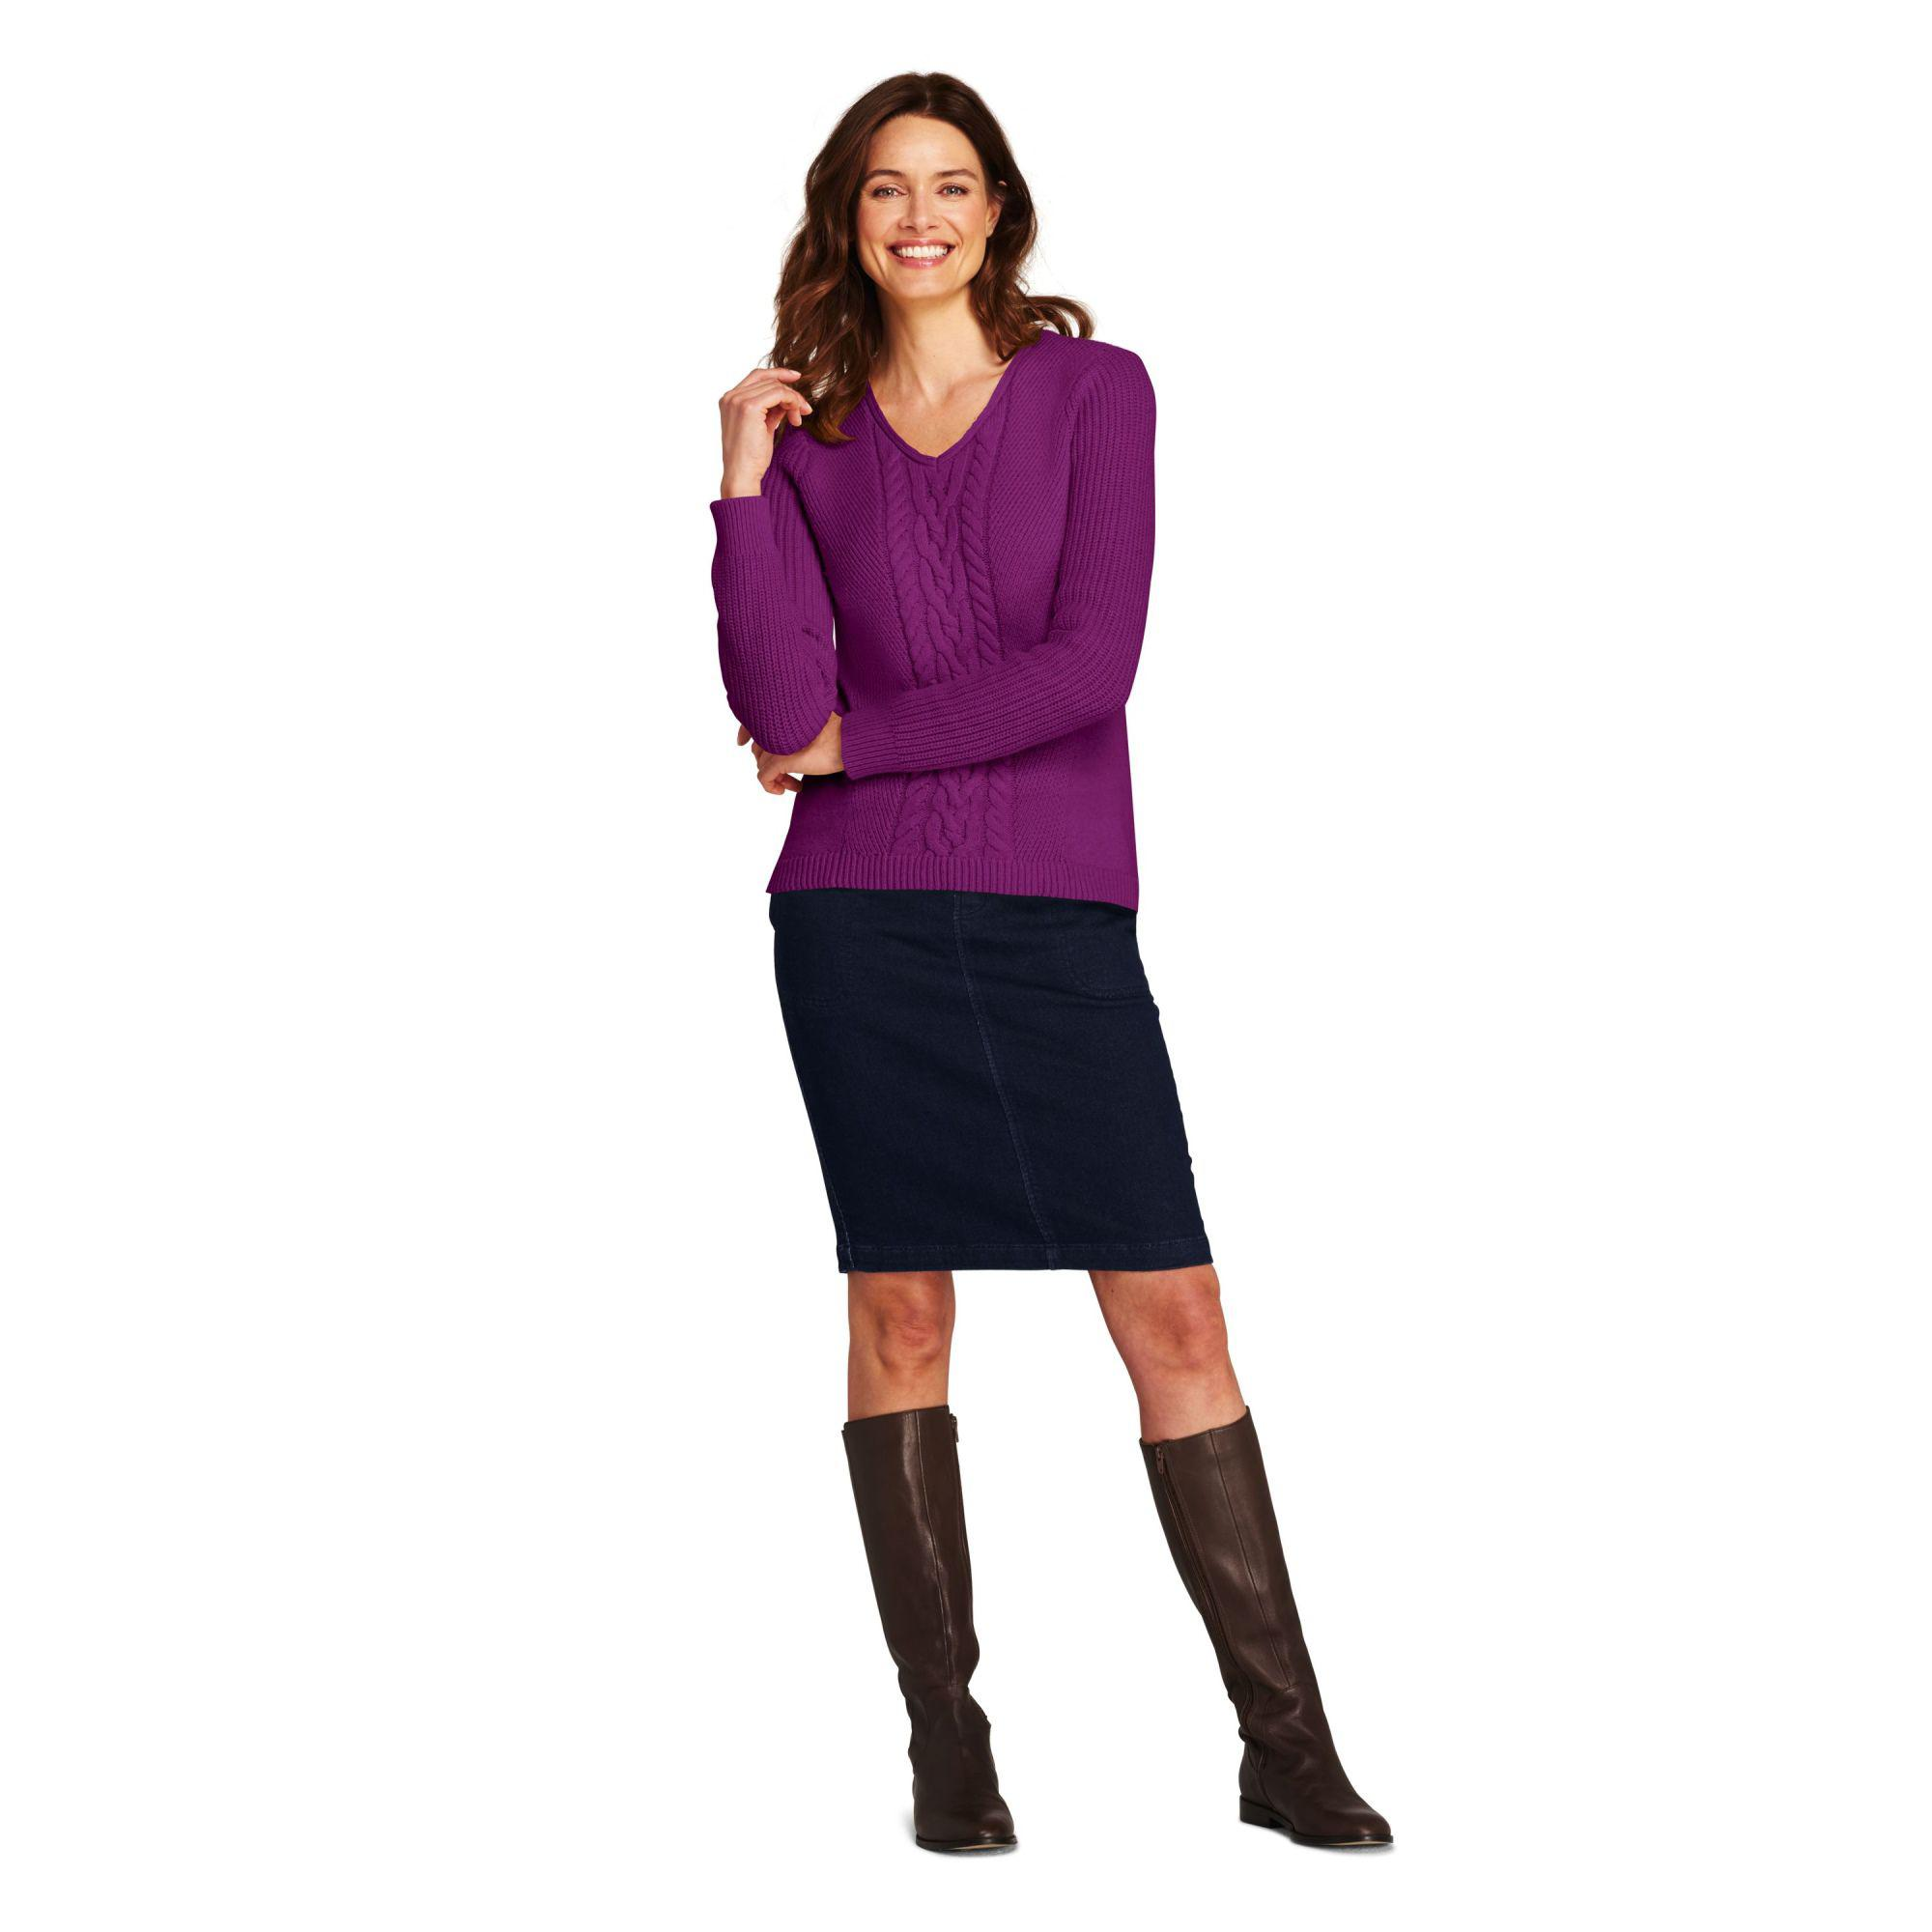 ad596748948 Lands' End Purple Petite Cable V-neck Jumper in Purple - Lyst